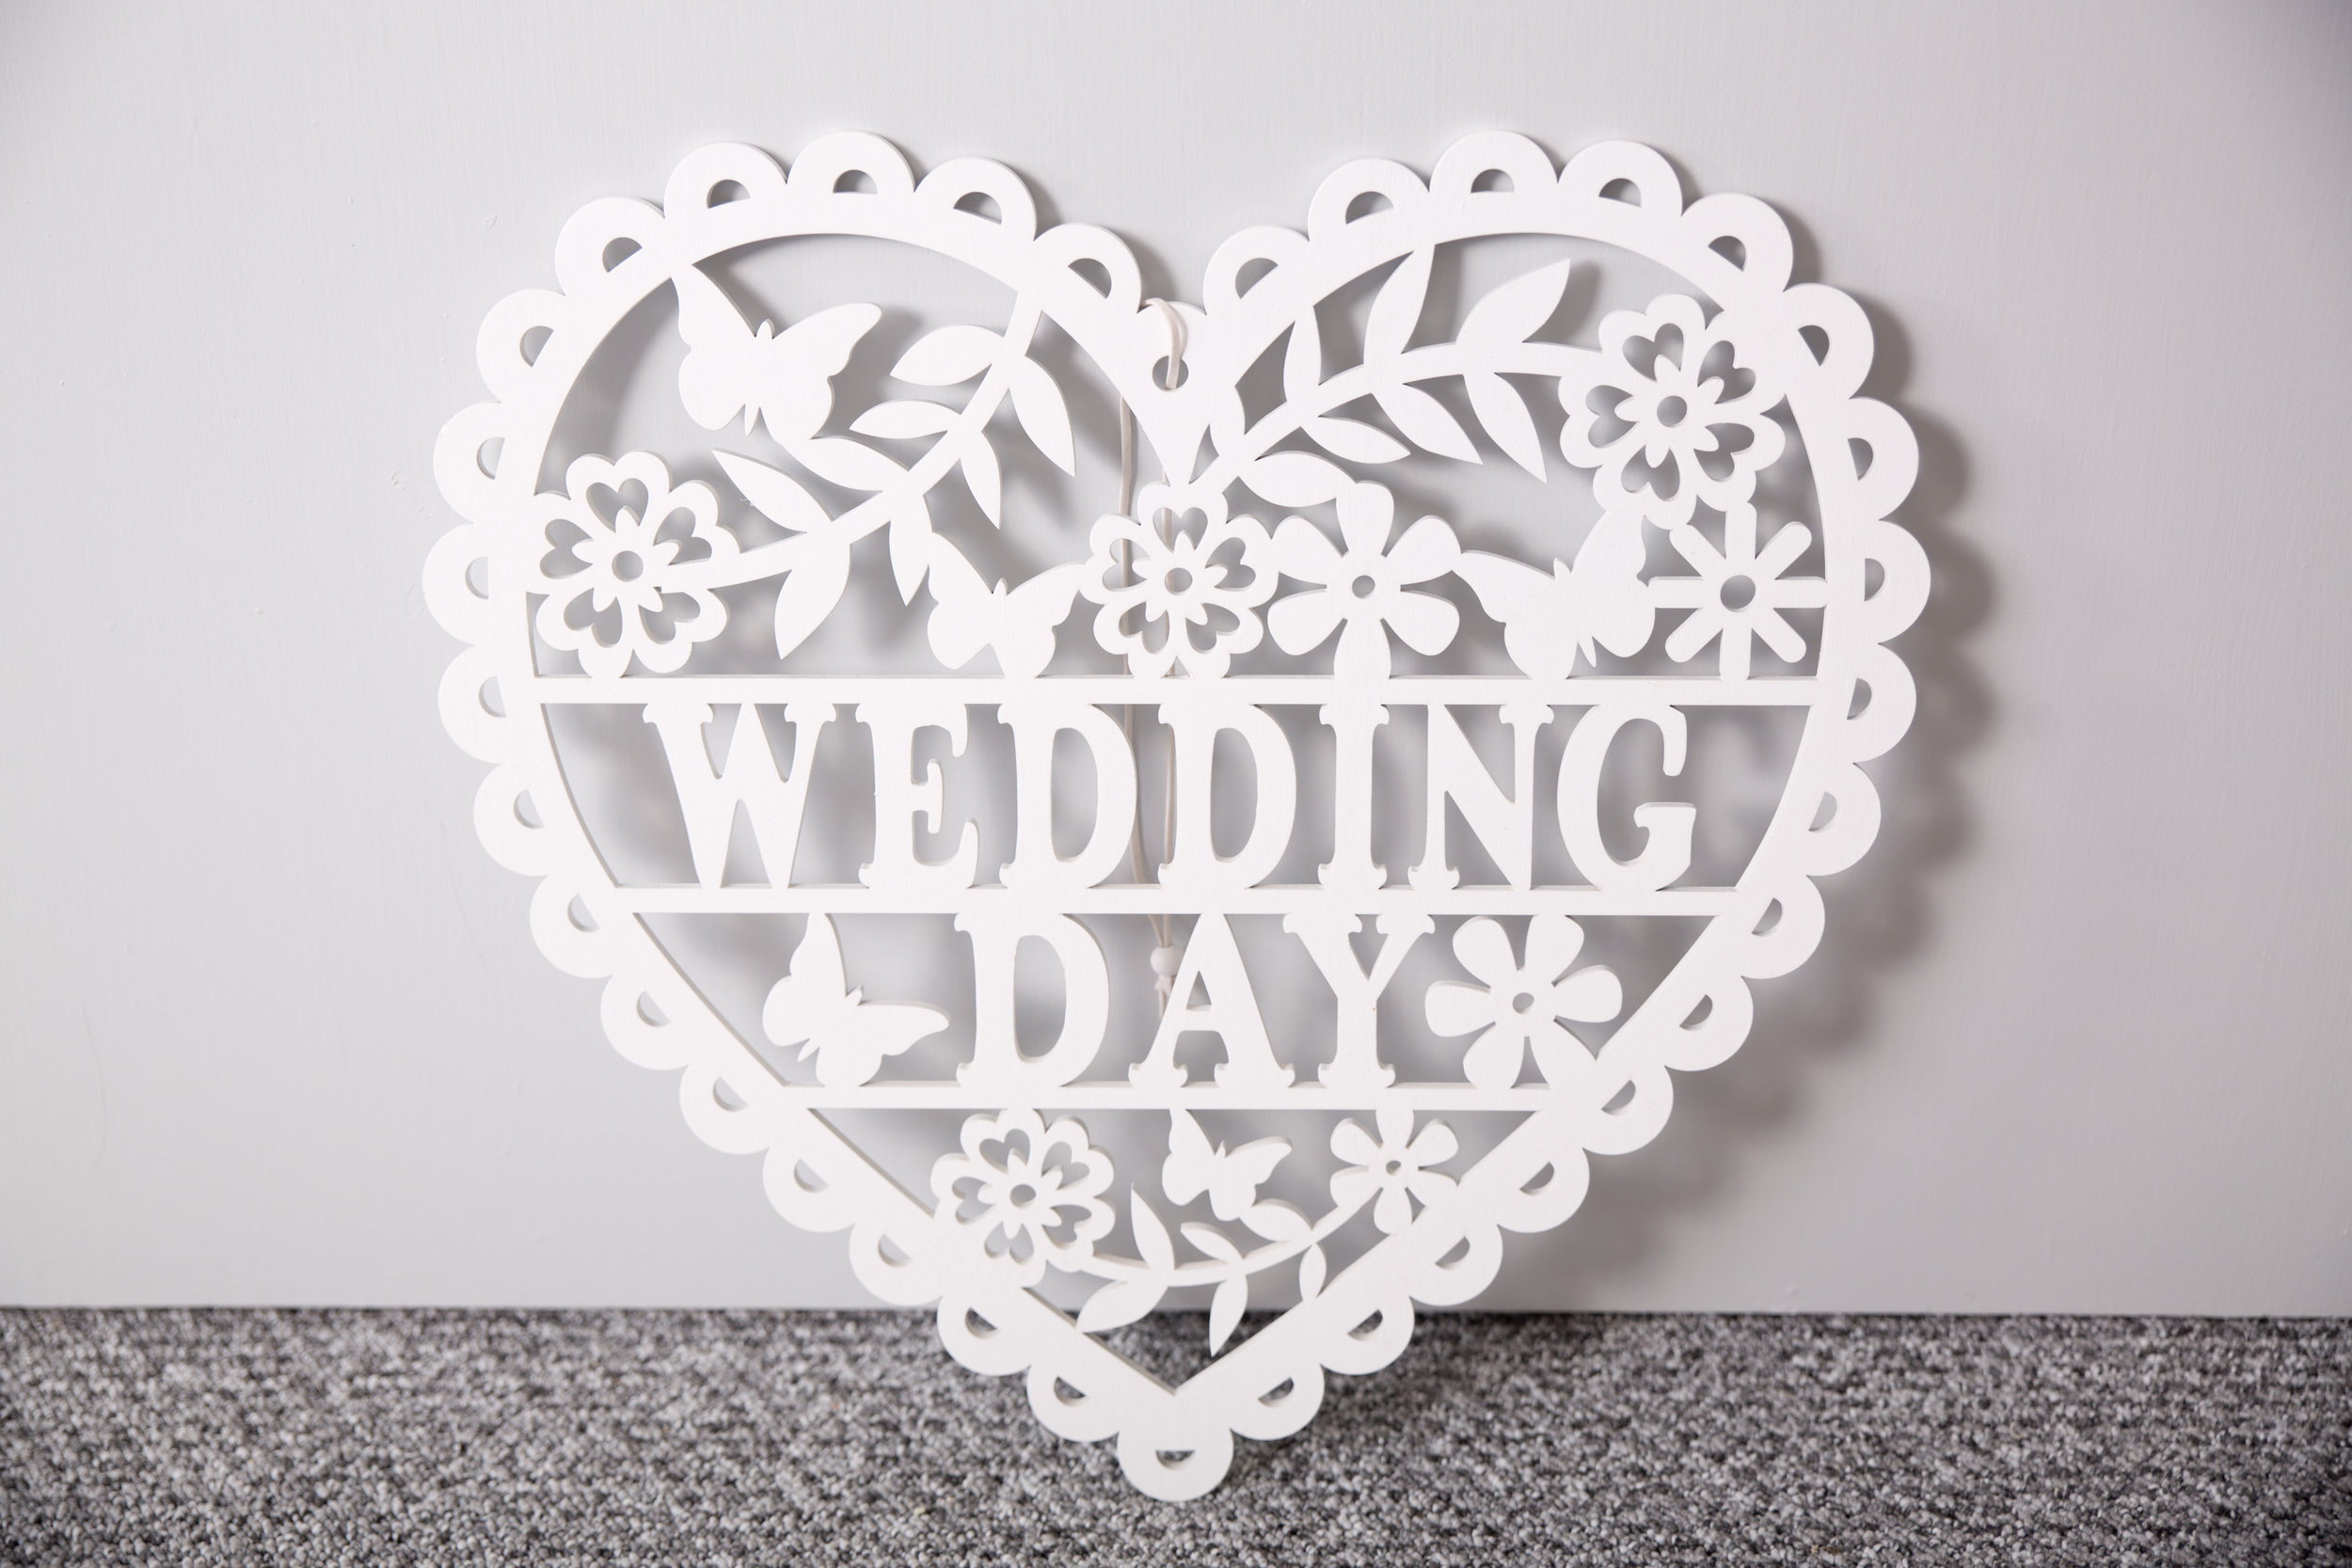 Wedding Day Heart (RDLL05)